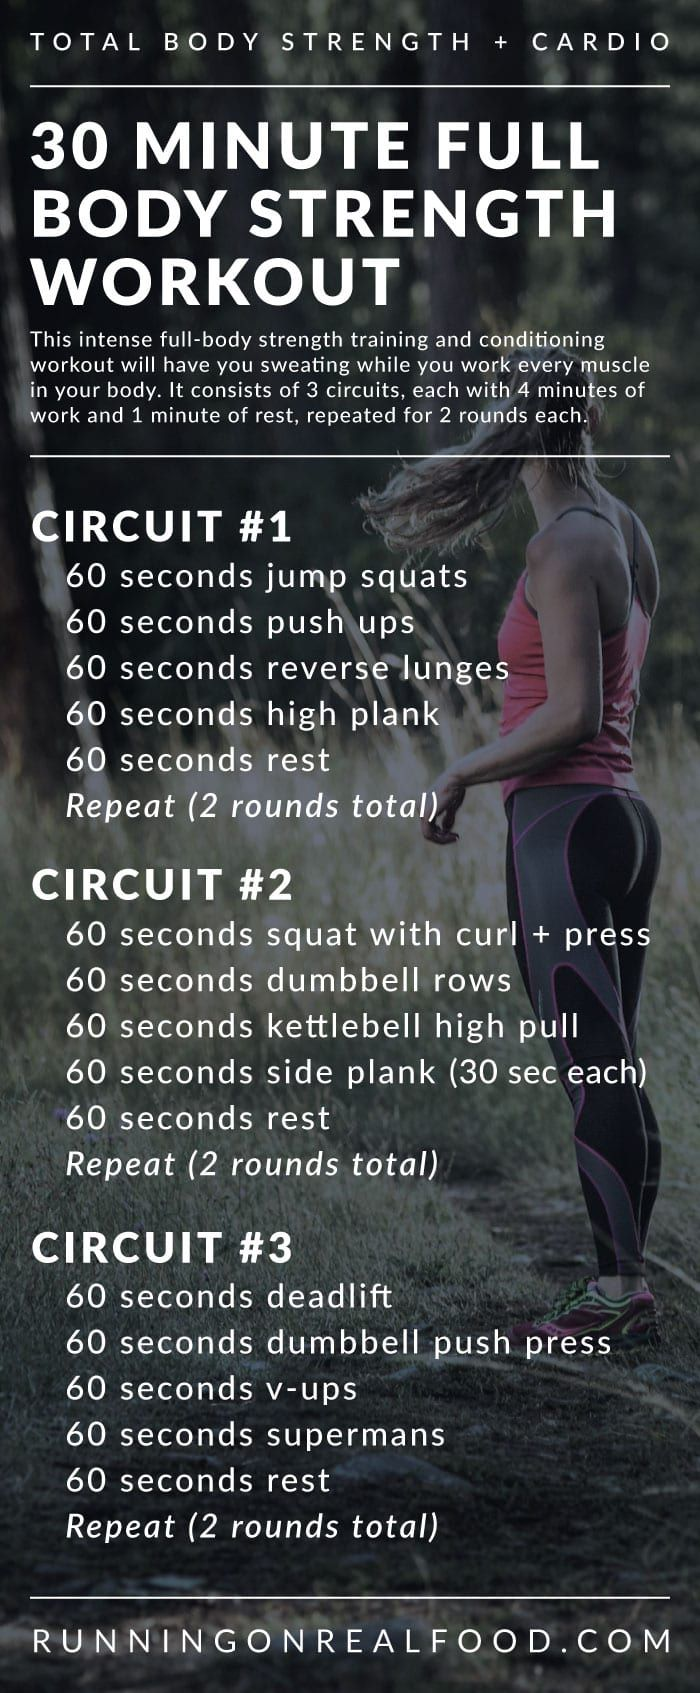 30 Minute Full Body Strength Training Workout For The Gym Strength And Conditioning Workouts Full Body Strength Training Workout Full Body Strength Workout